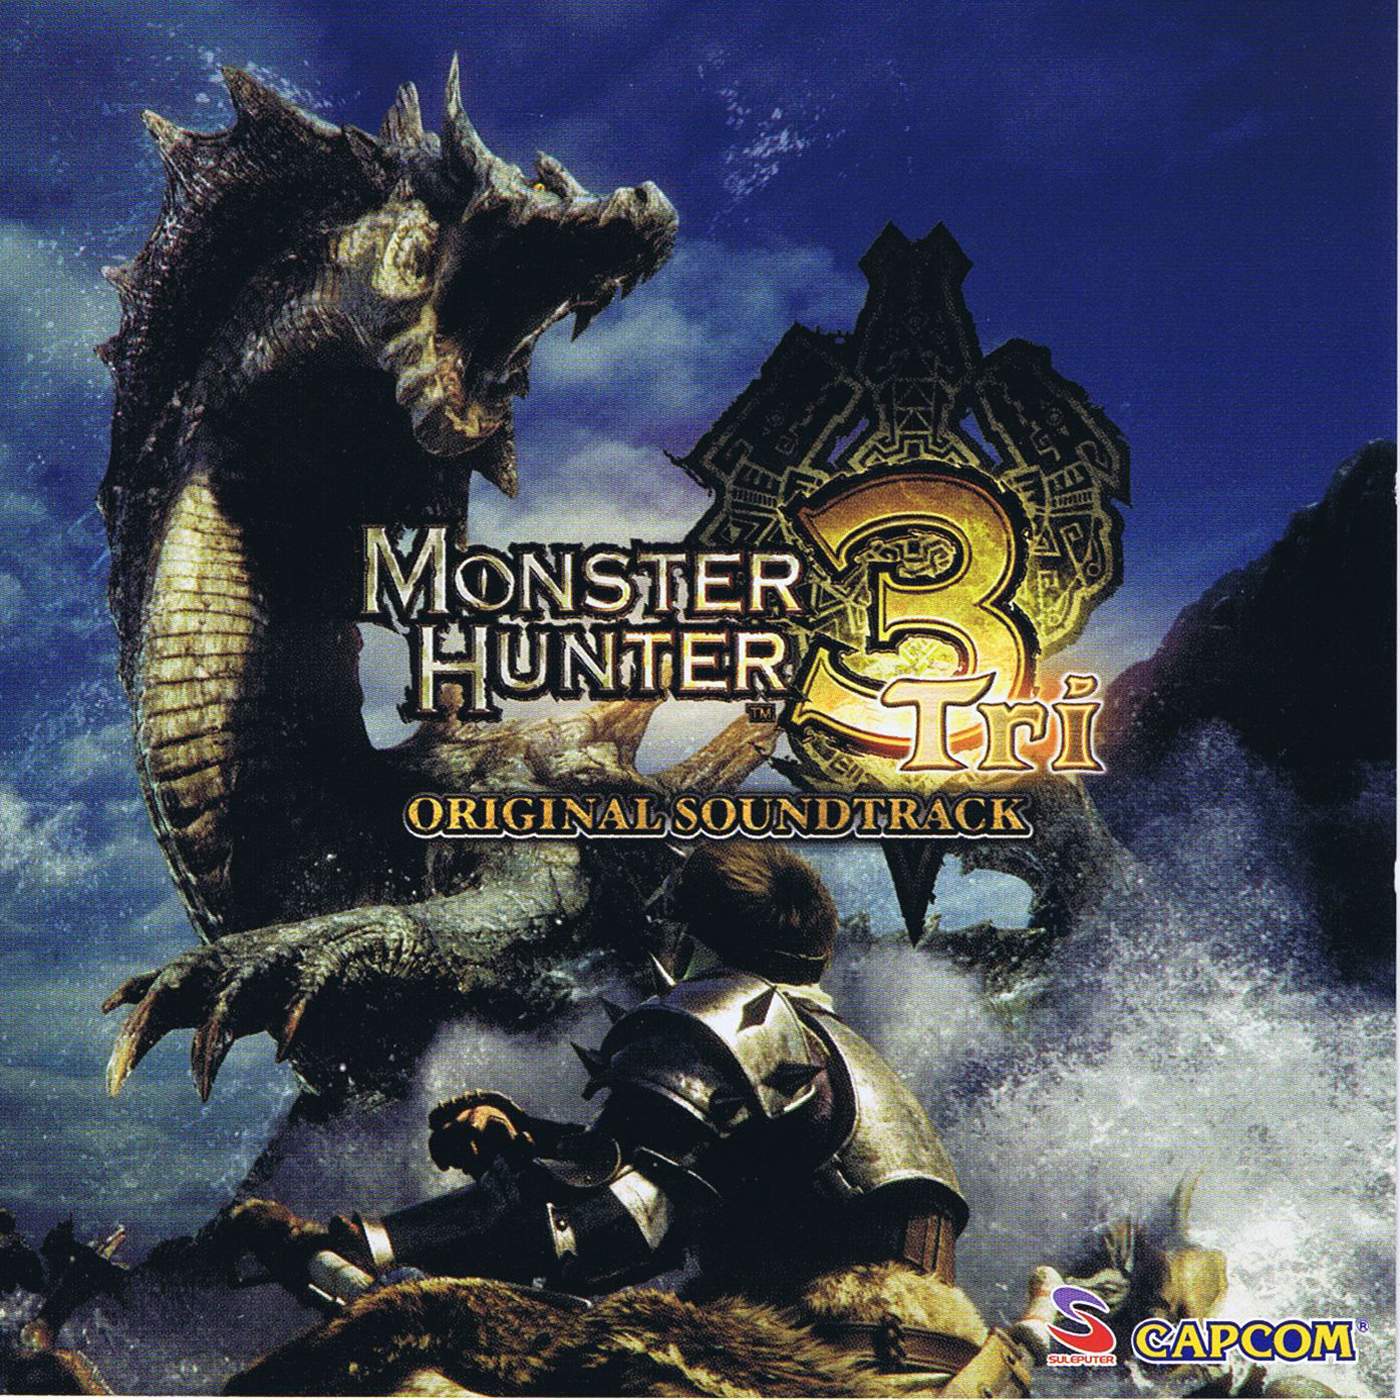 Monster hunter 3 (tri) ost: disc 1 to those alive youtube.